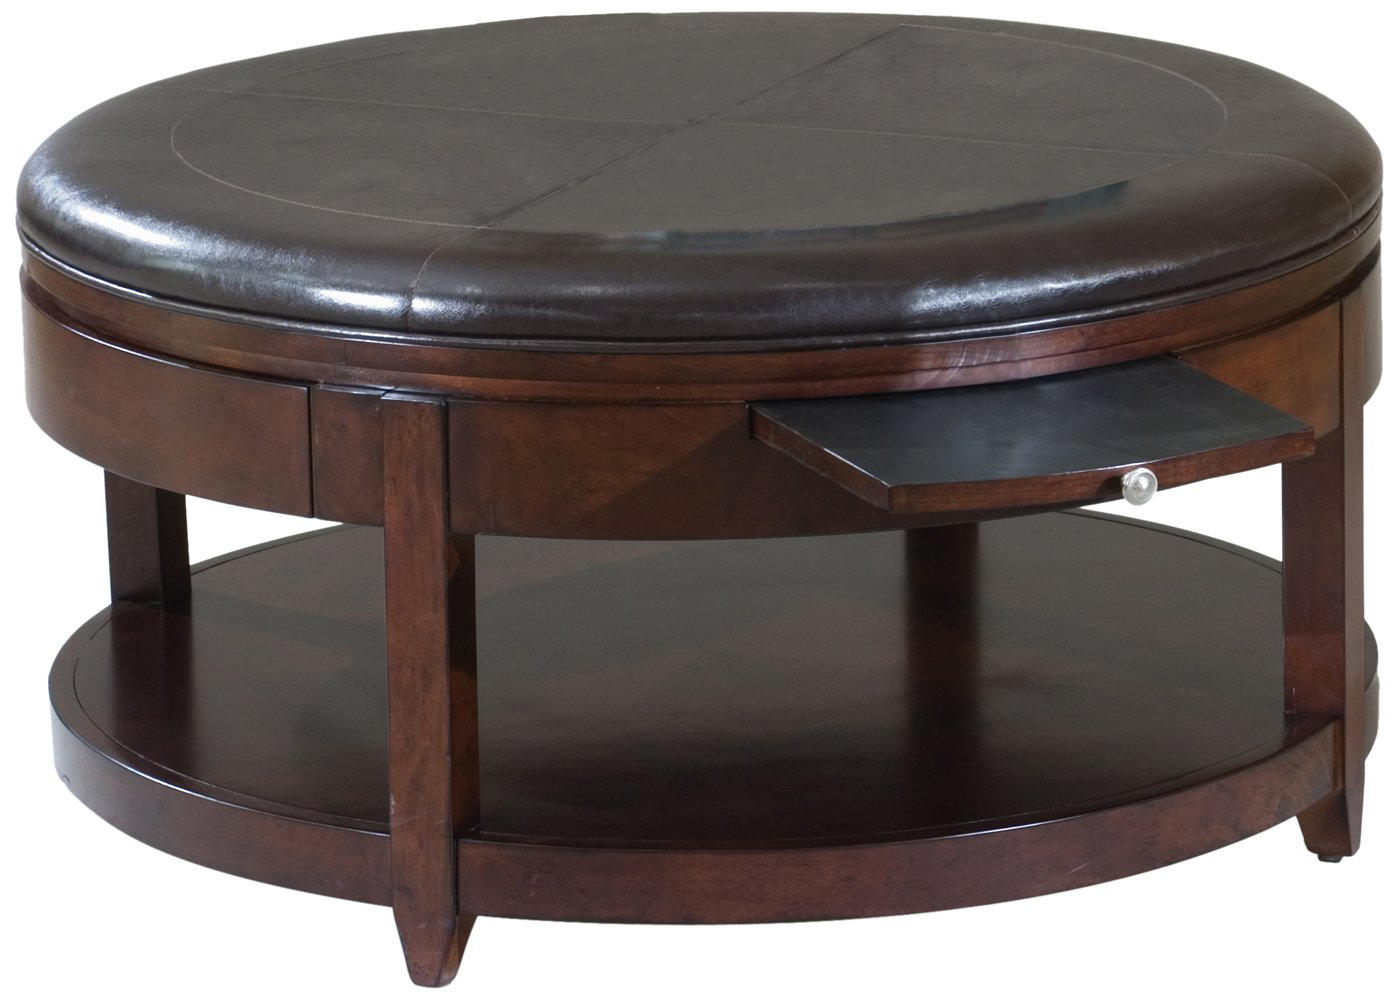 Large round tufted leather ottomans with storage olivia 39 s place Round coffee tables